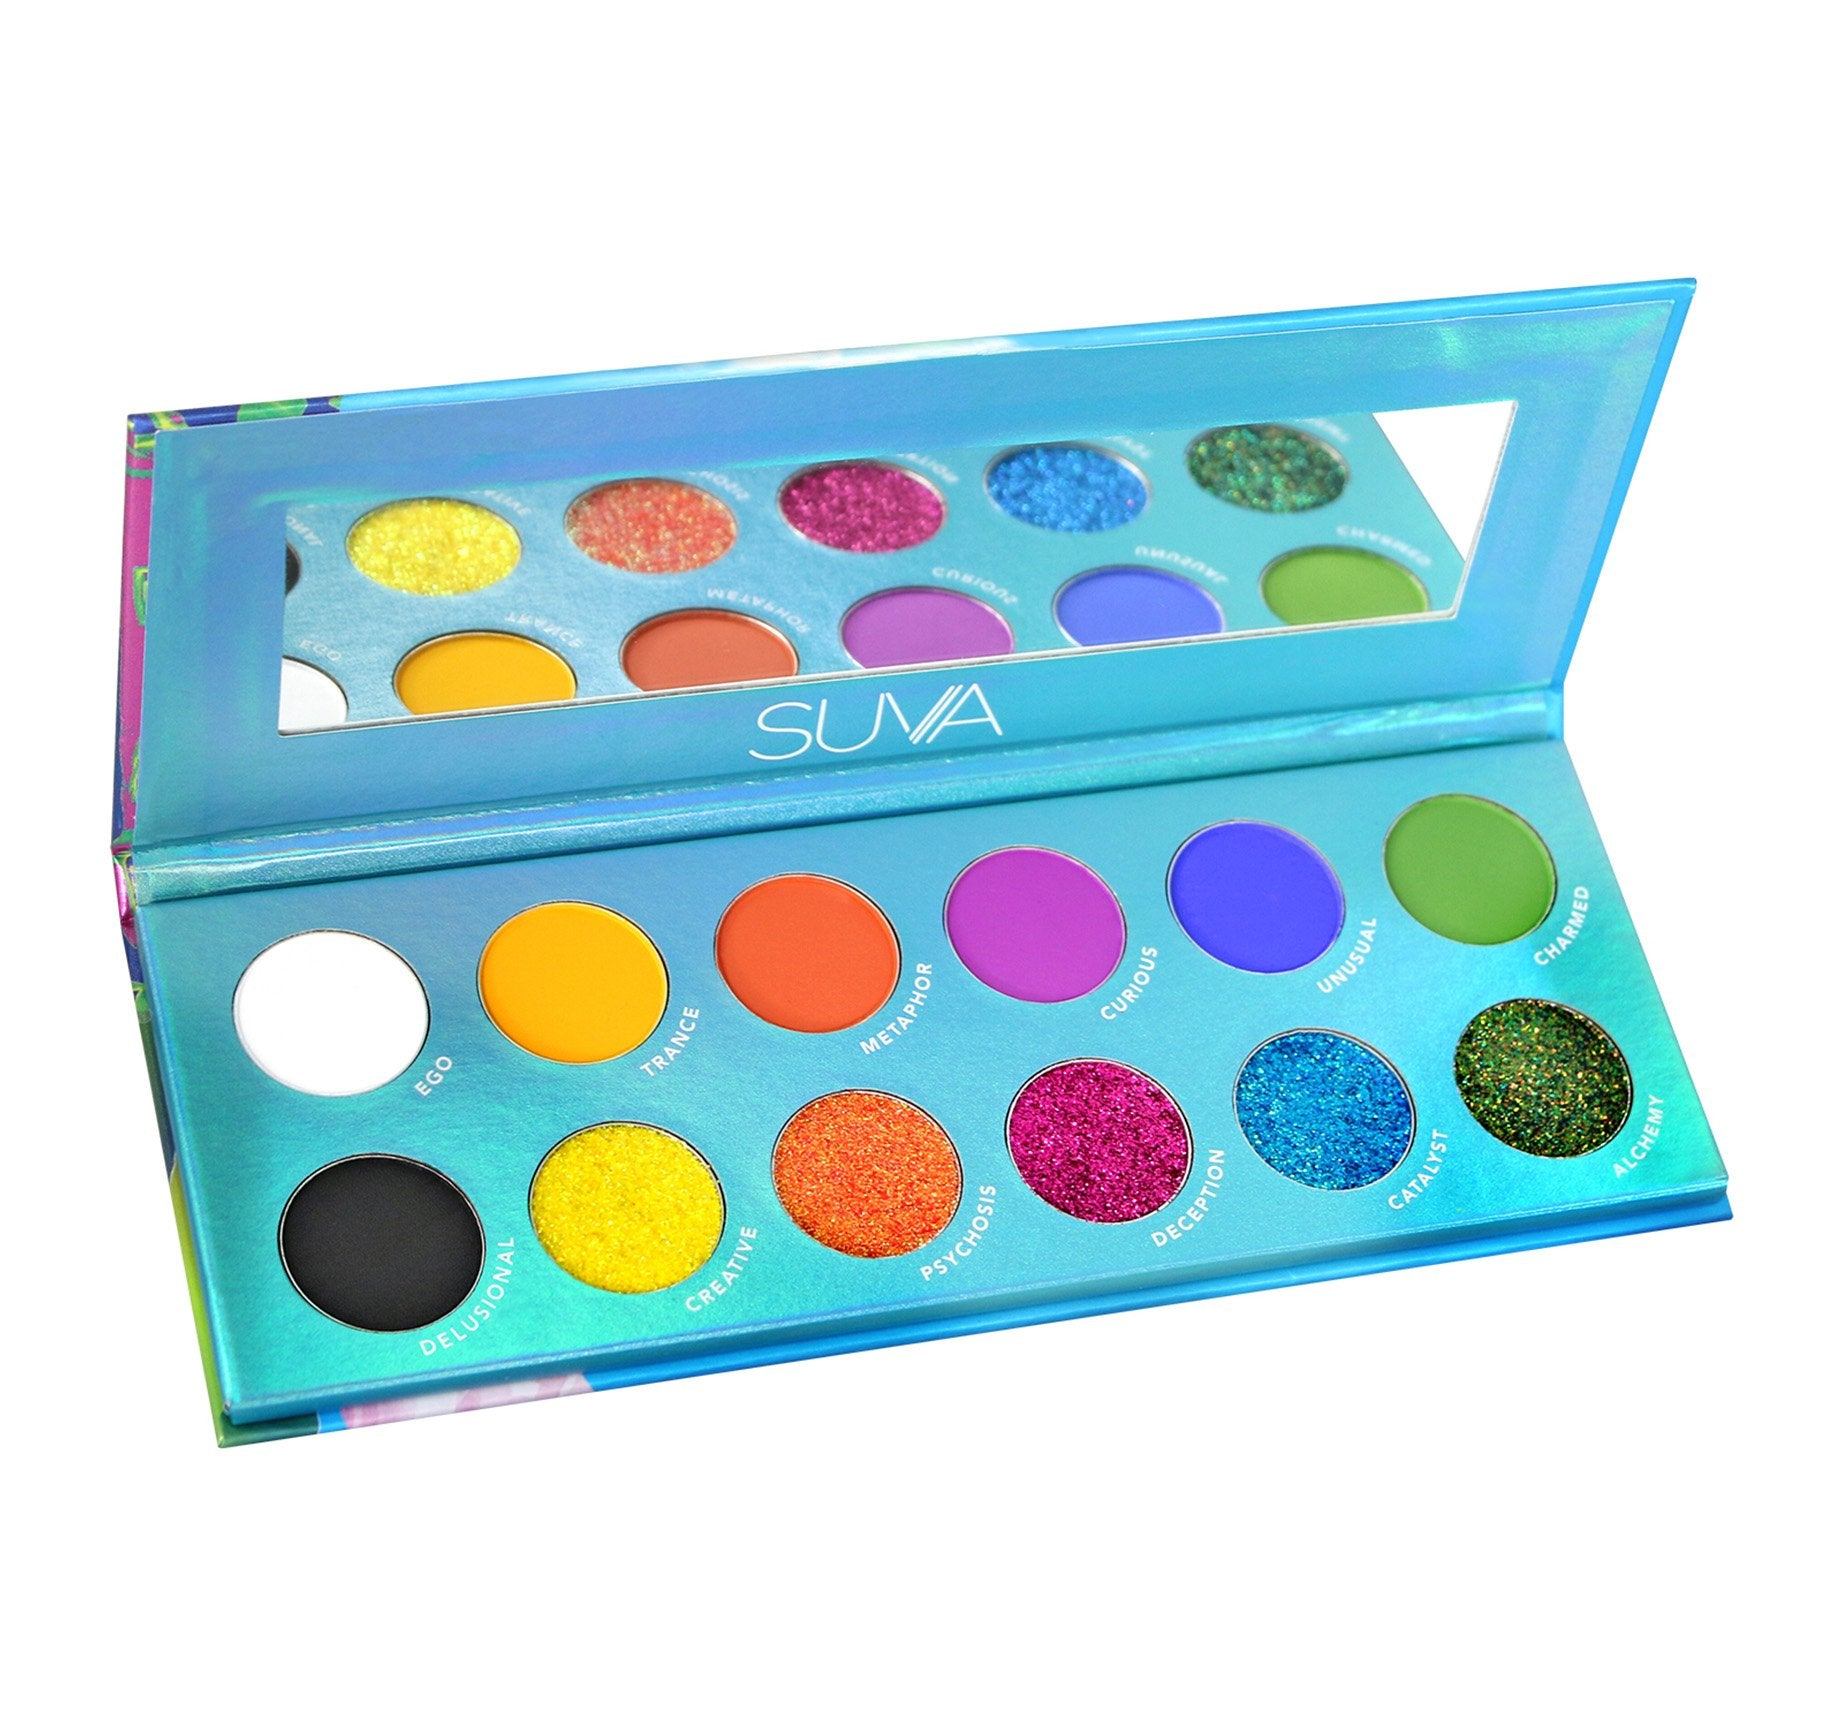 PALETTE MAGIC + ECSTASY PRESSED PIGMENT, visualizza immagine più grande